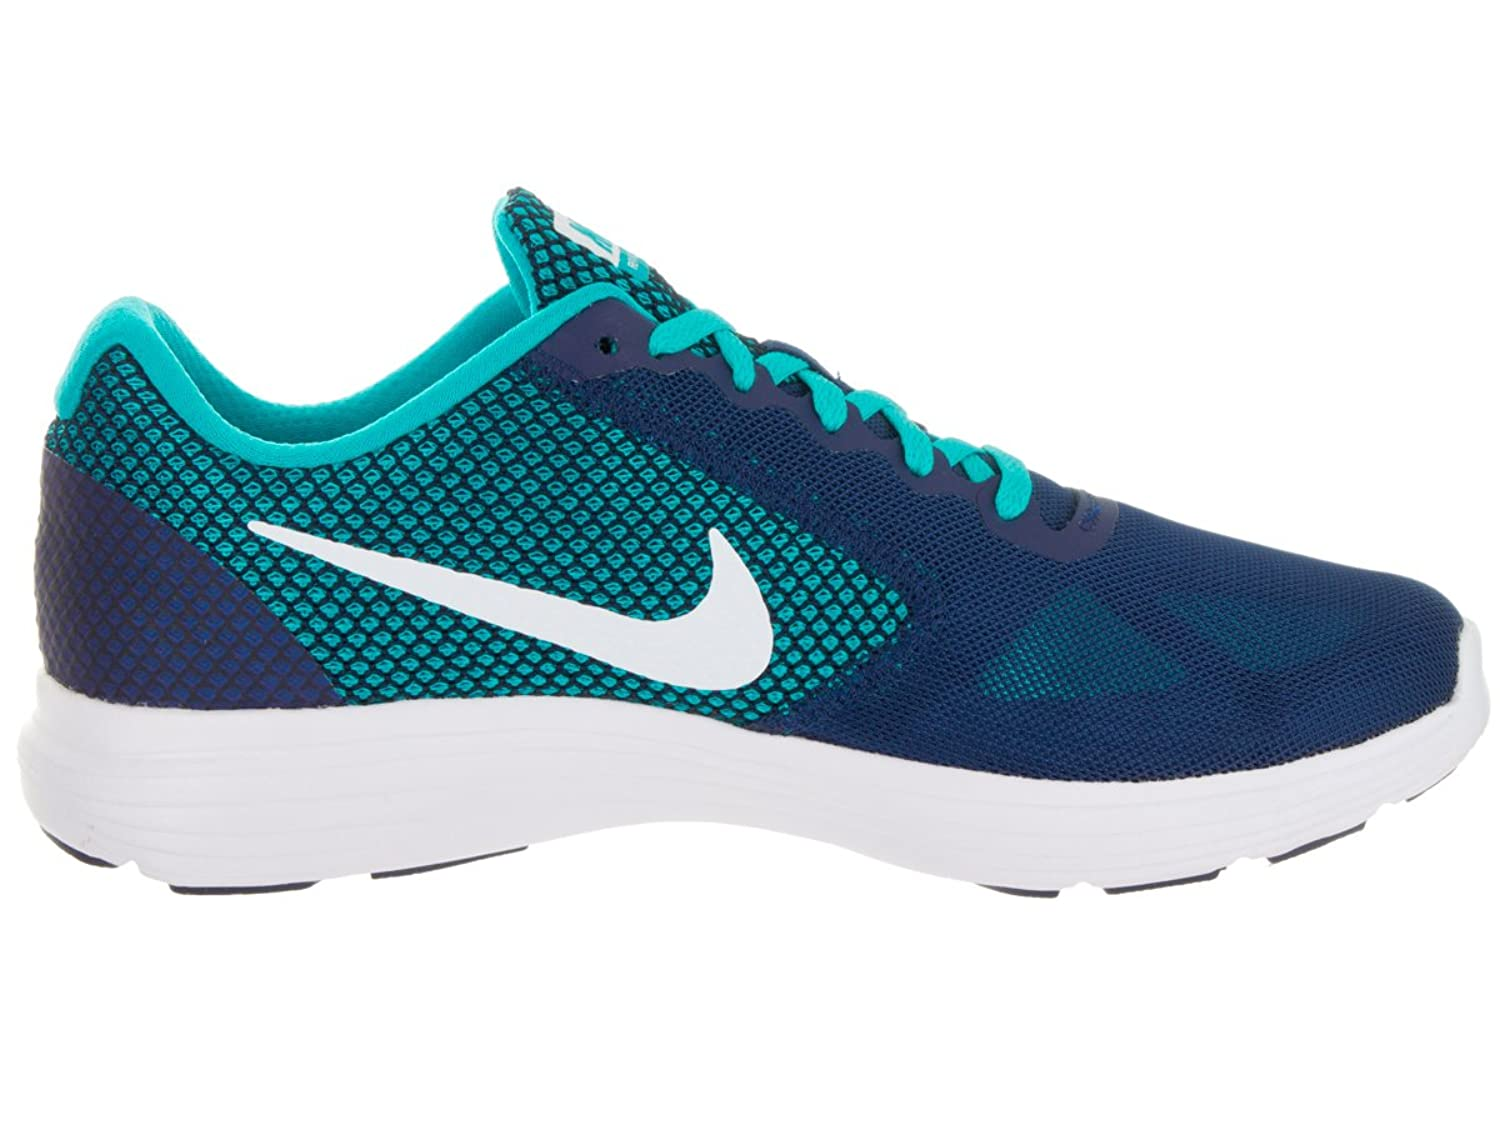 ... nike revolution 3 men u0027s running shoes 819300 405 buy online at ...